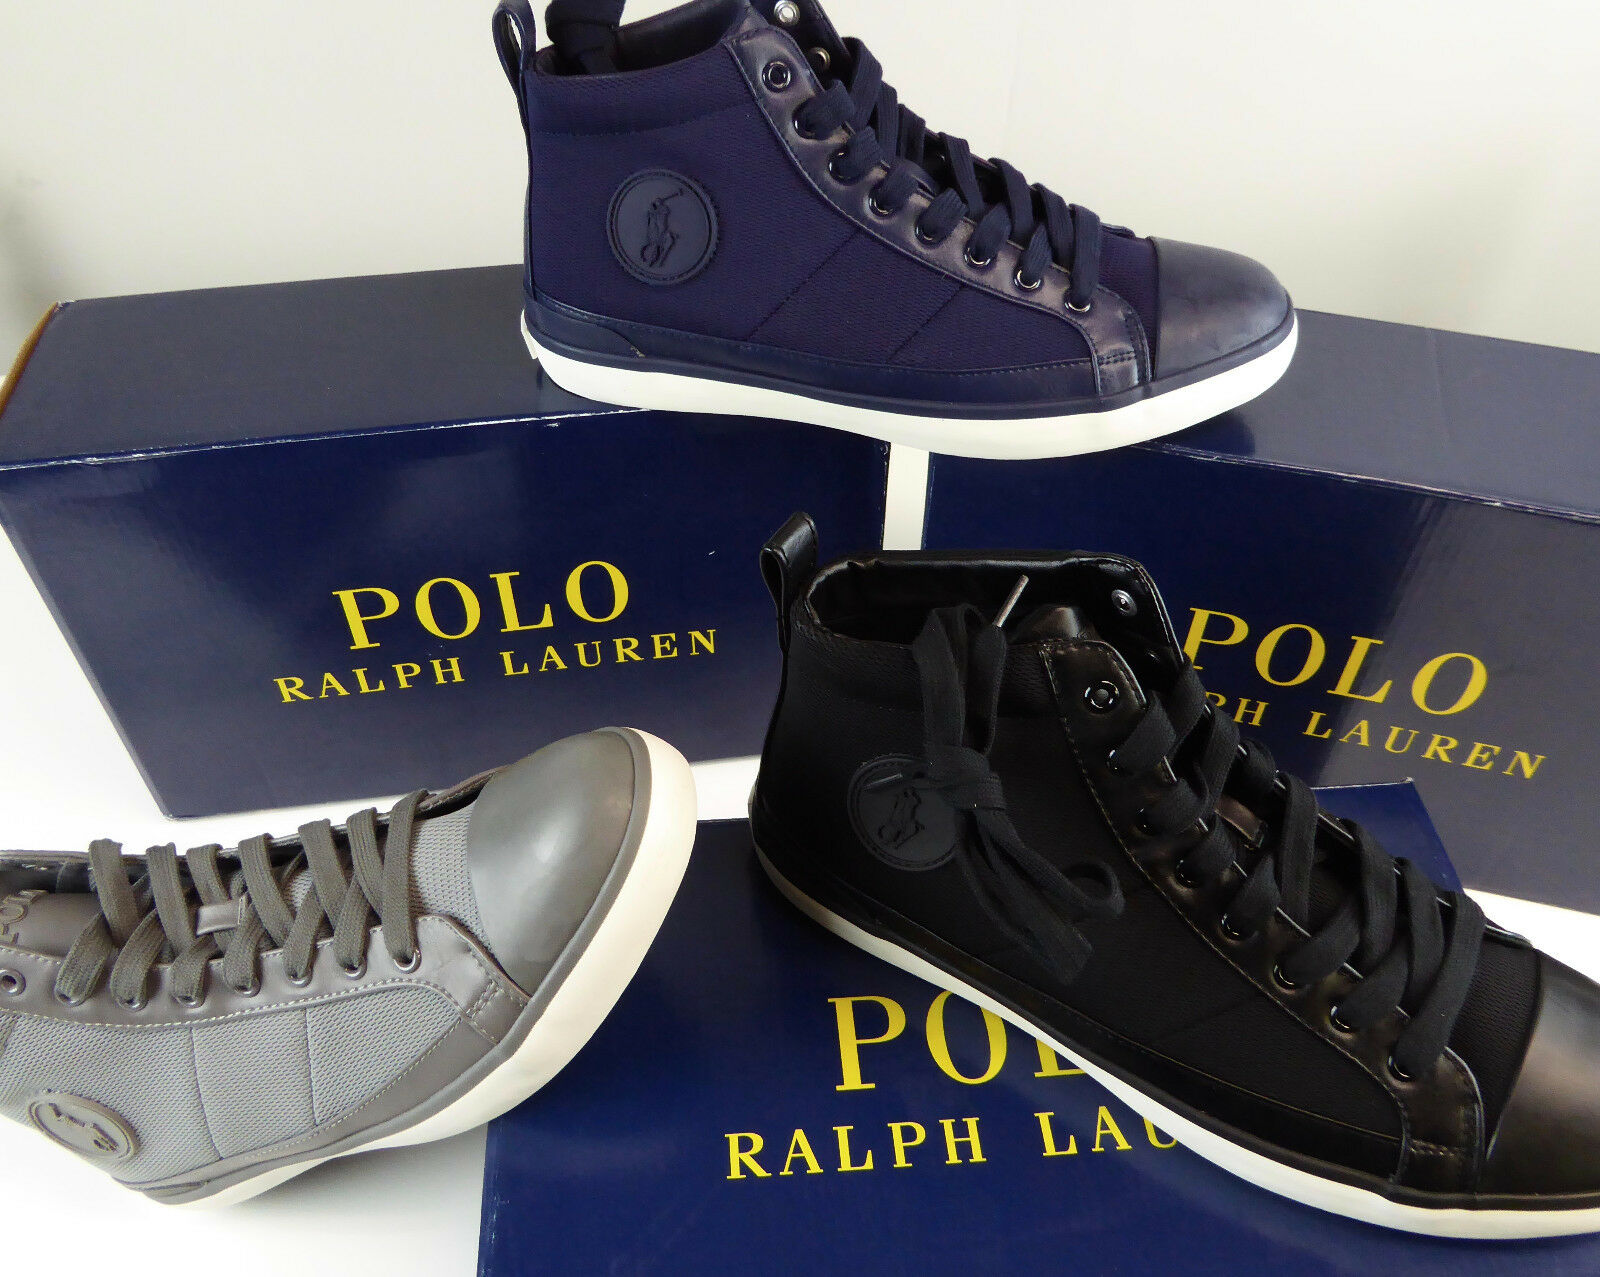 Polo Sneaker Ralph Lauren Old School Clarke High-Top Mesh Sneaker Polo Schuhes NIB New Hi-Tops 1cea8e